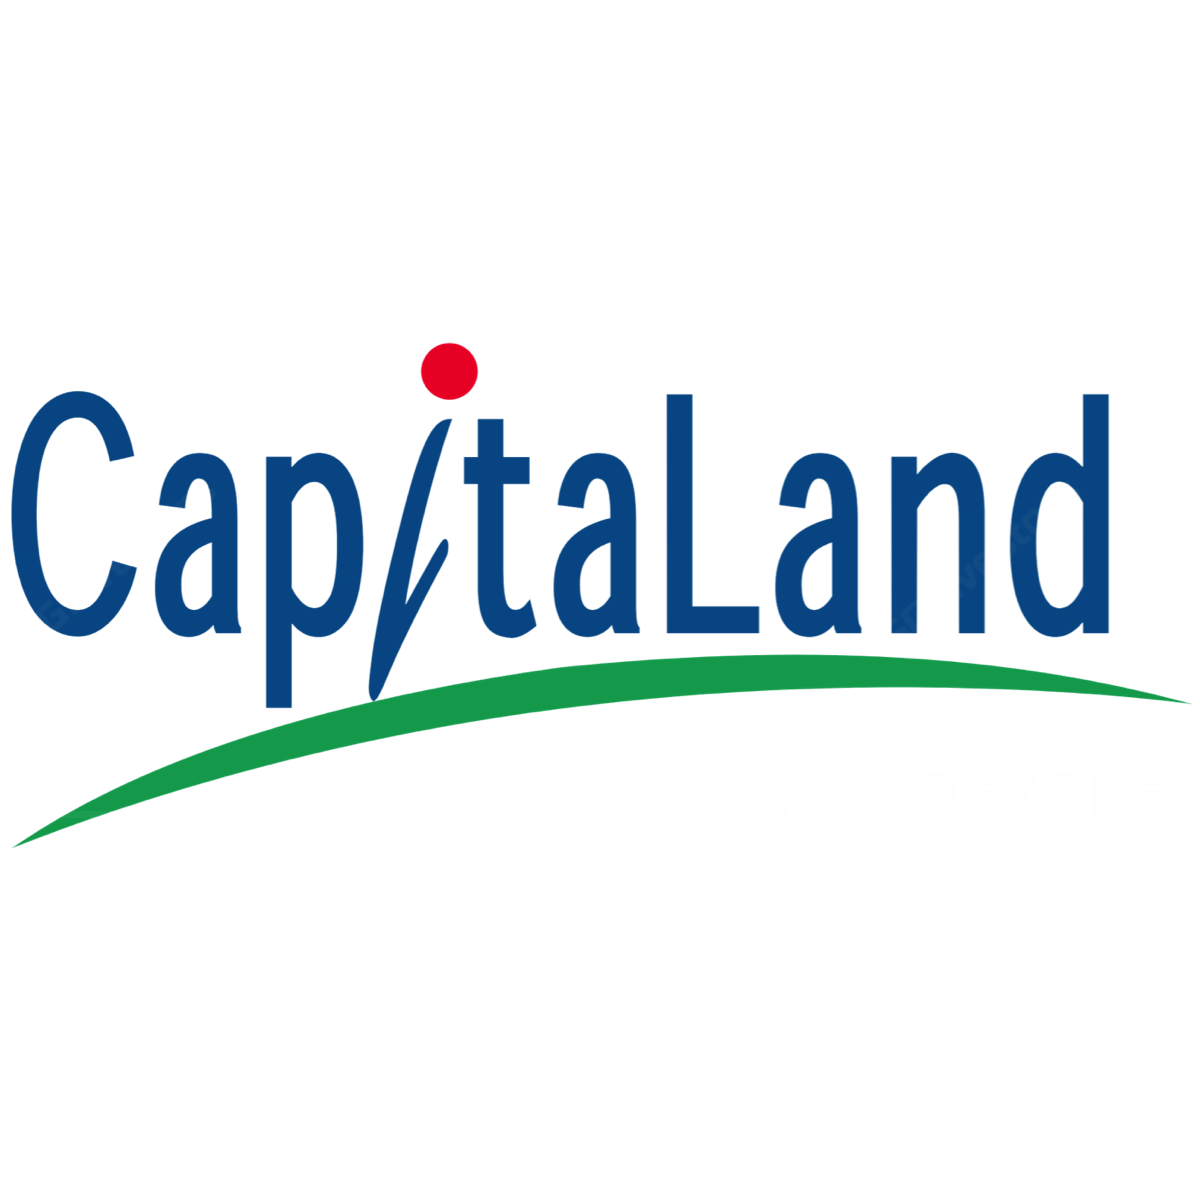 CapitaLand Limited - OCBC Investment 2018-02-14: Higher Dividends; Replenishing Its Land Bank